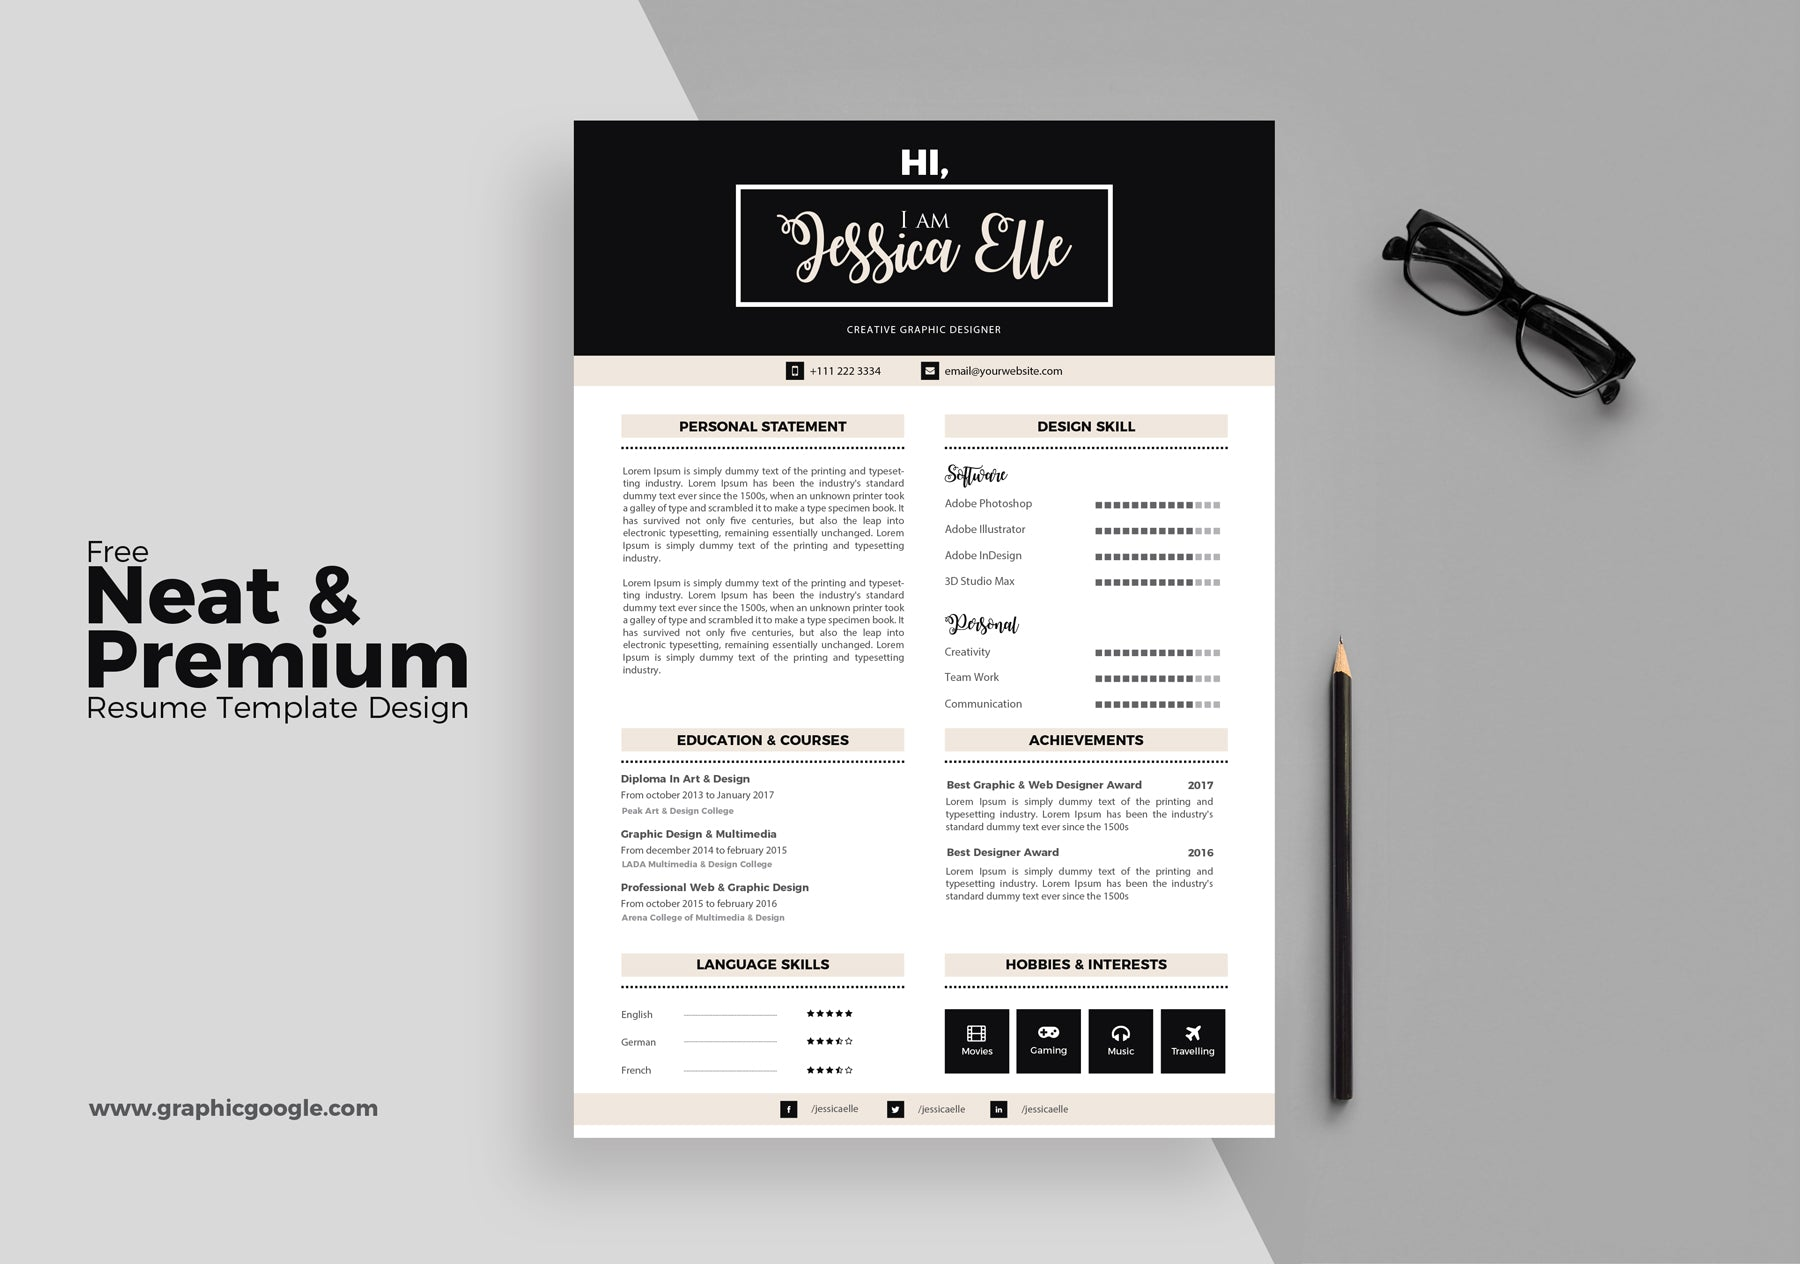 free neat and premium resume template design in